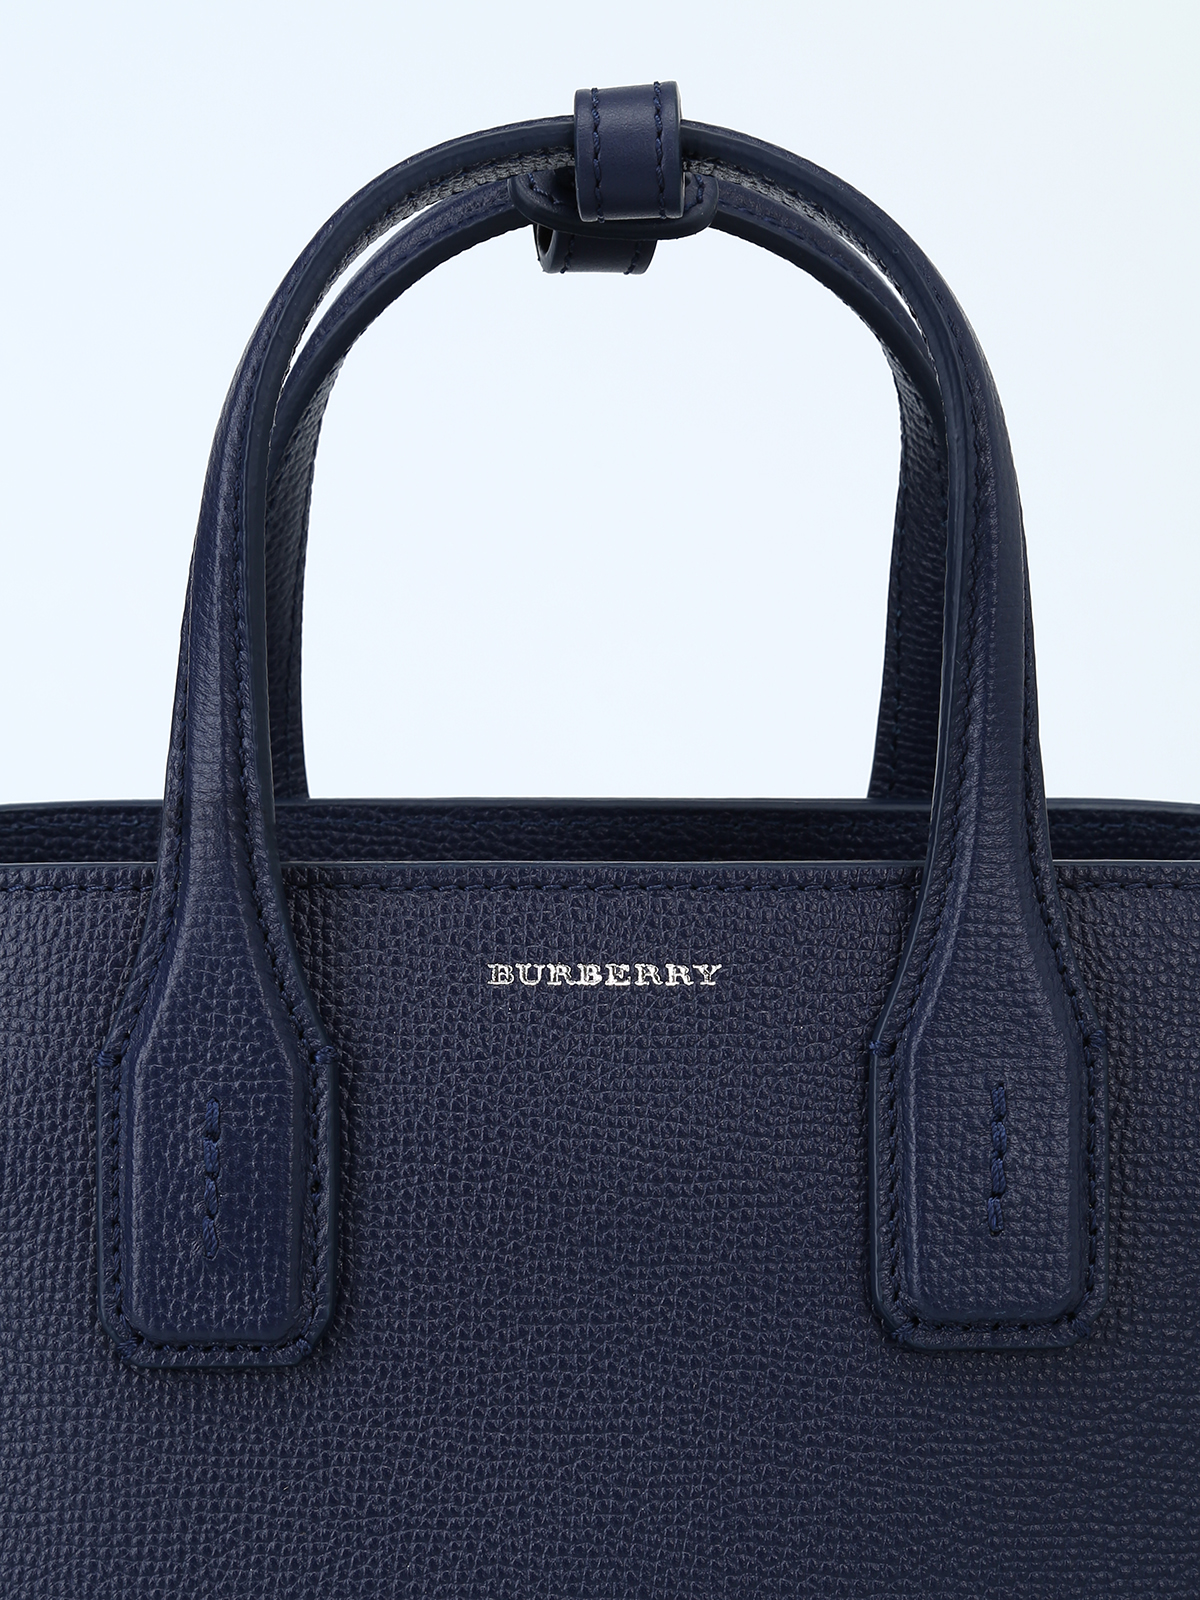 43b81fad0d80 Burberry - The Small Banner regency blue leather bag - cross body ...